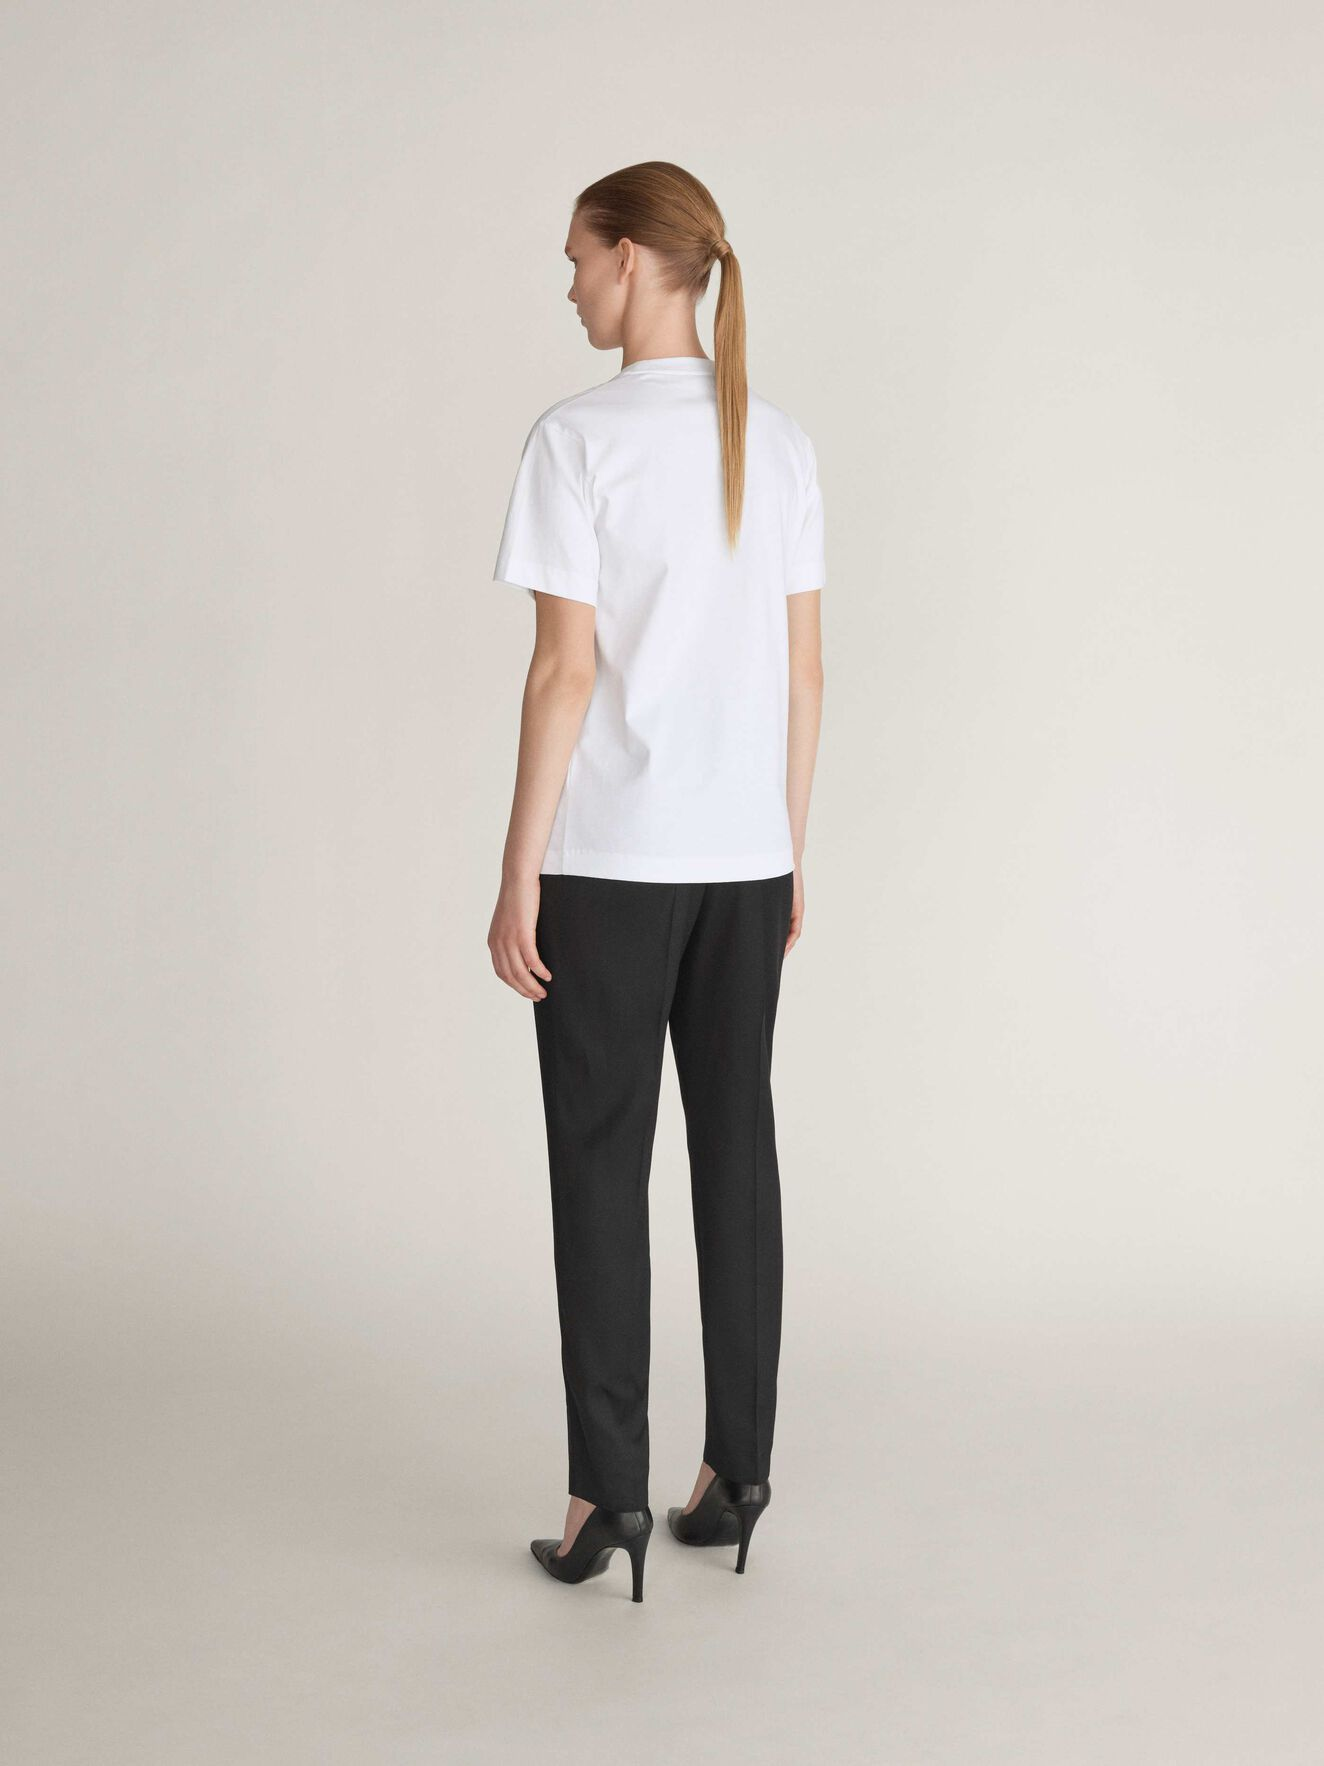 Dellana P T-Shirt in Bright White from Tiger of Sweden